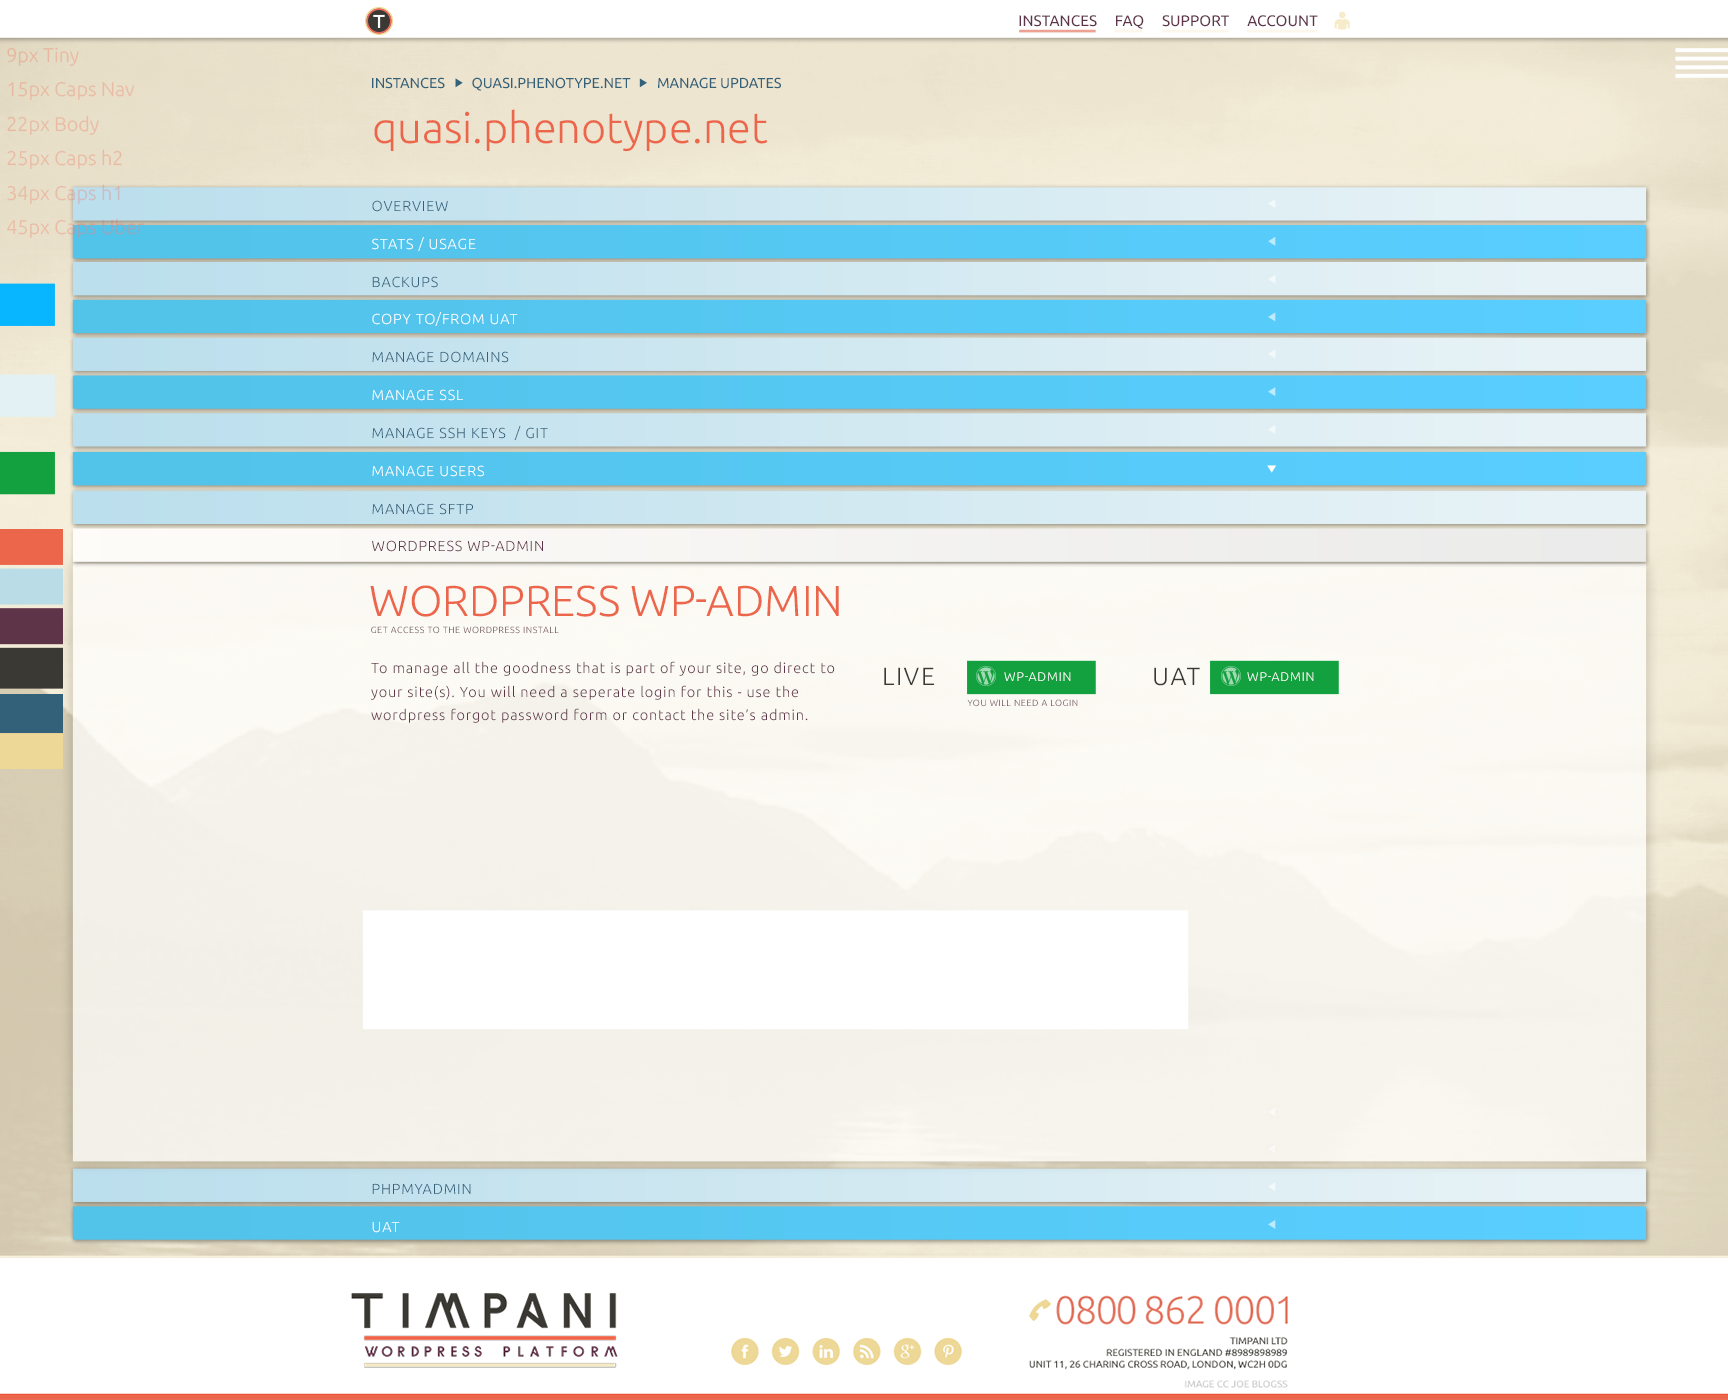 Timpani with Practically.io - Experts in web design and development